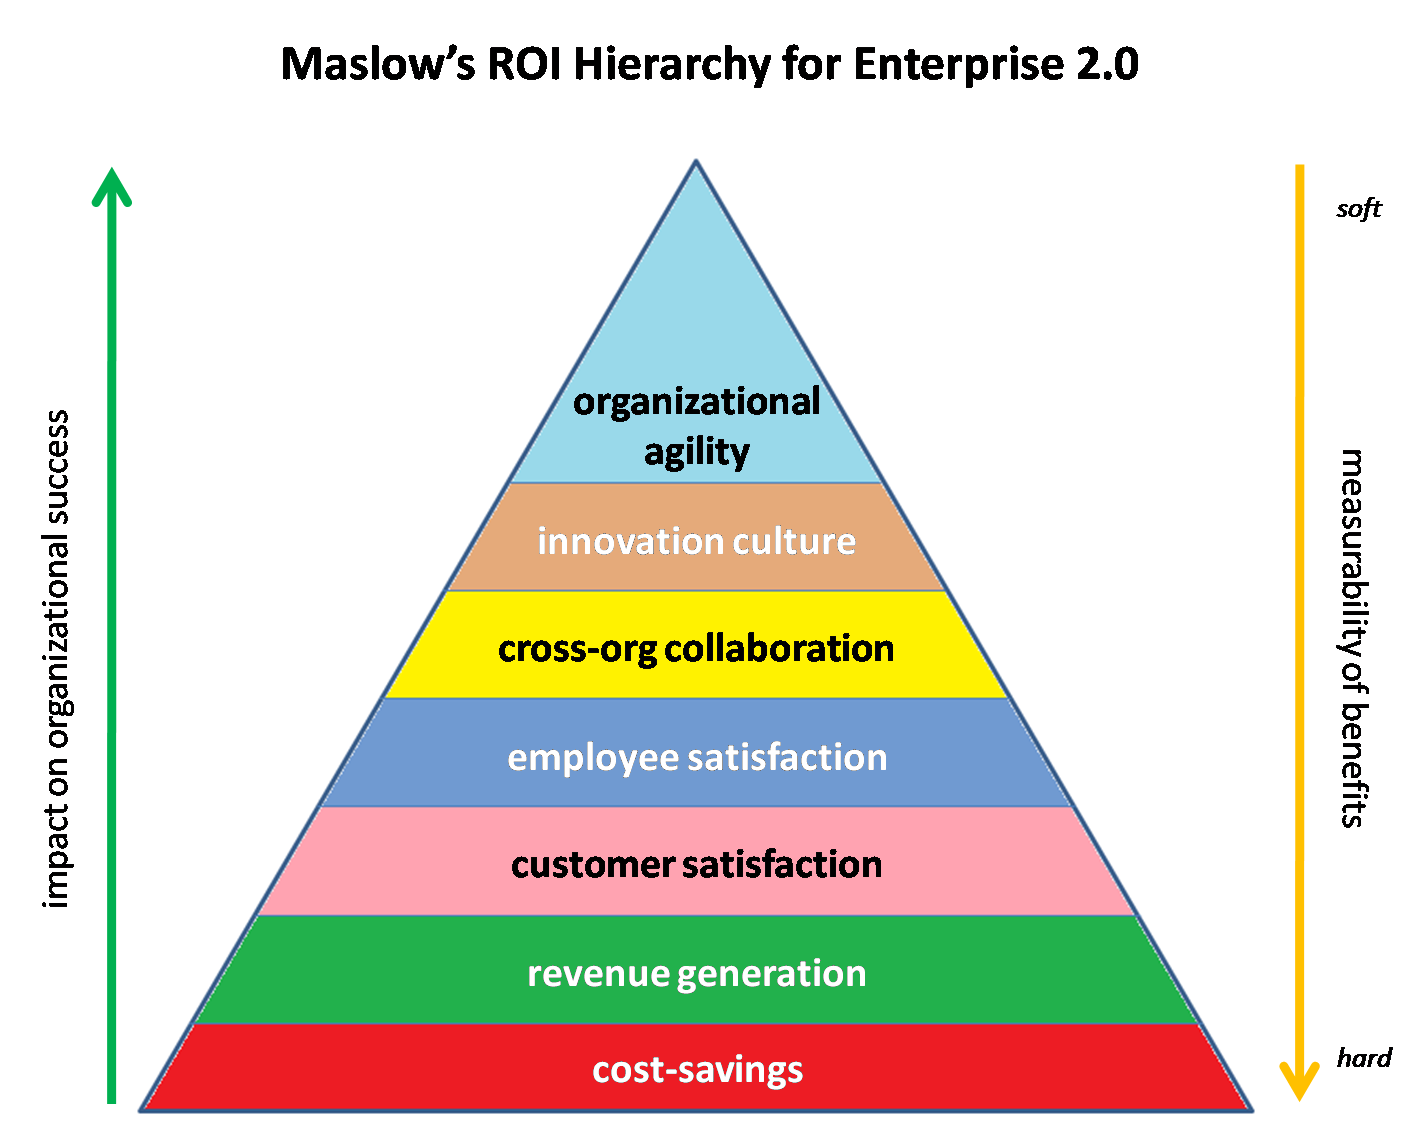 maslows-hierarchy-of-enterprise-20-needs